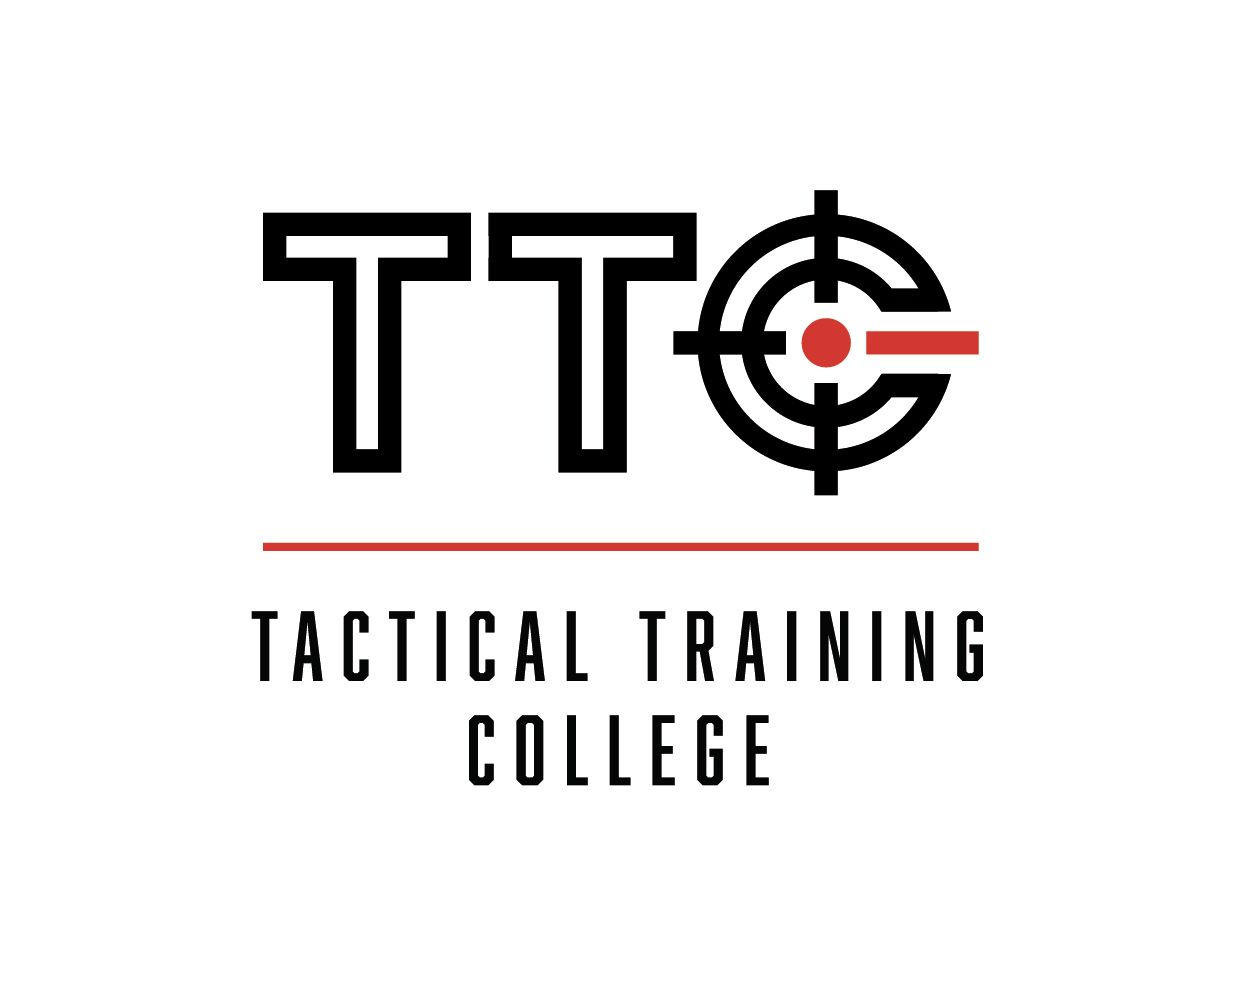 Tactical Training College